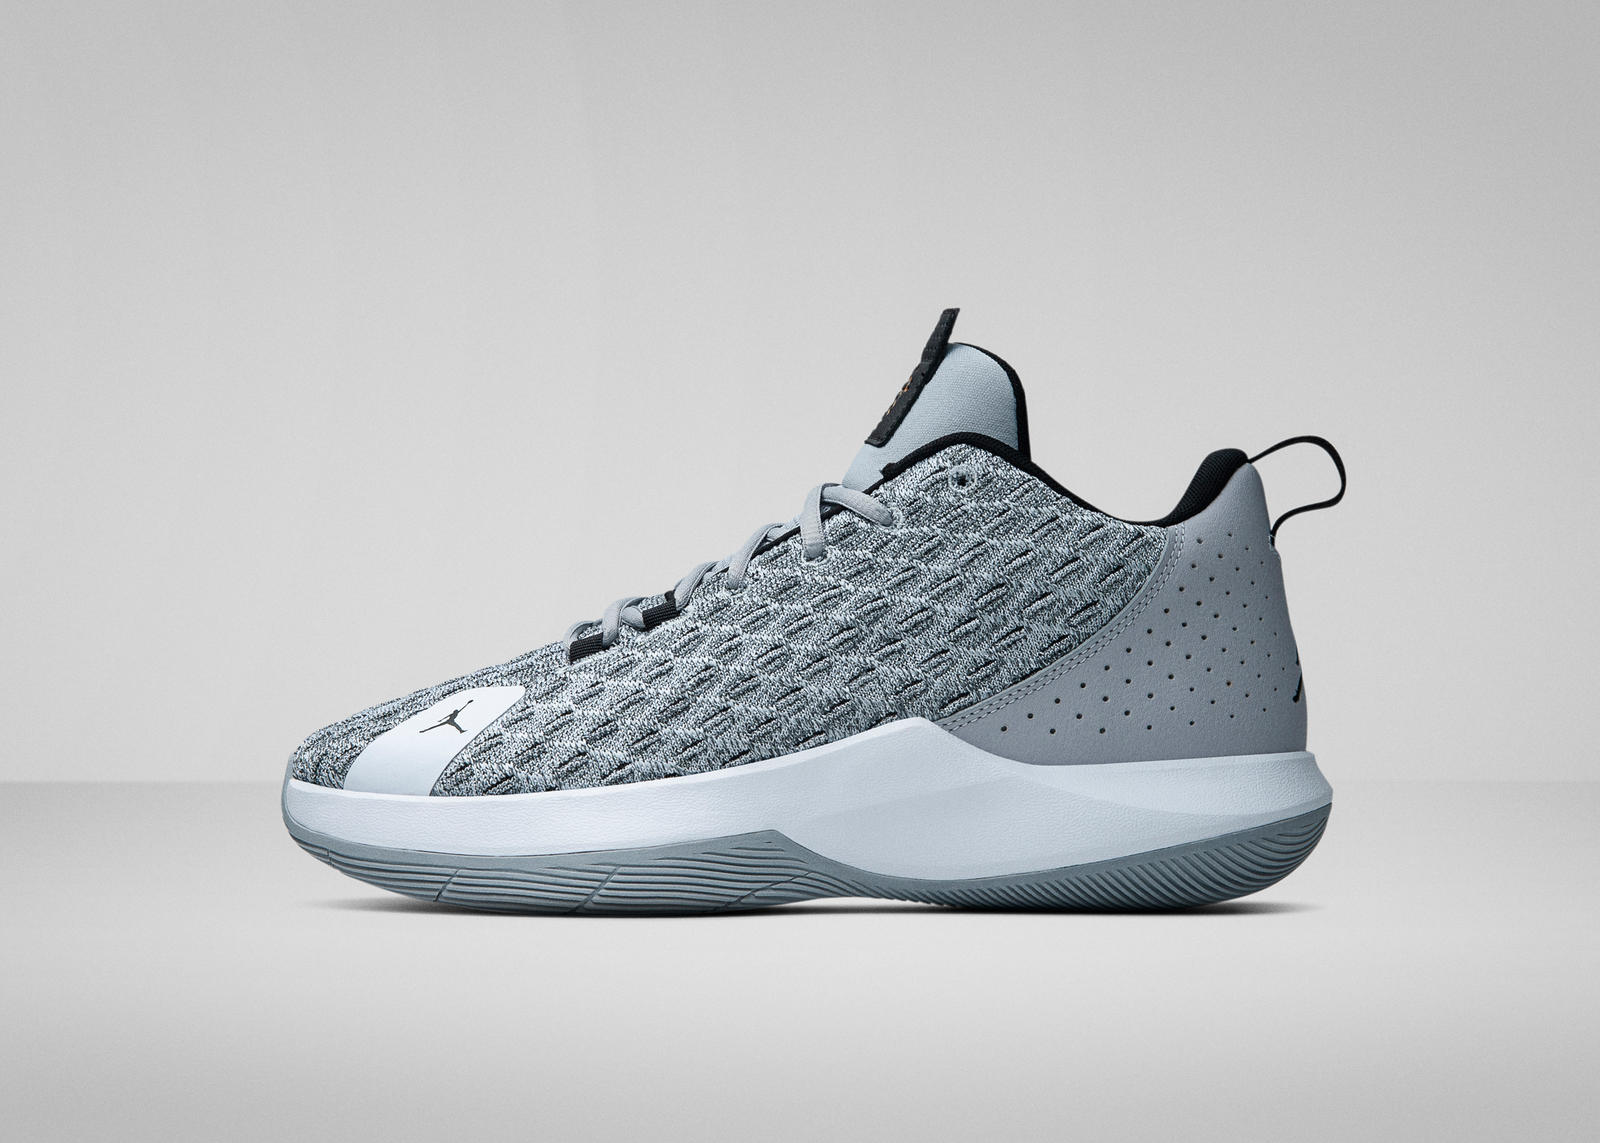 best website a9d96 57403 Jordan Chris Paul CP3 12 Official Images and Release Date ...